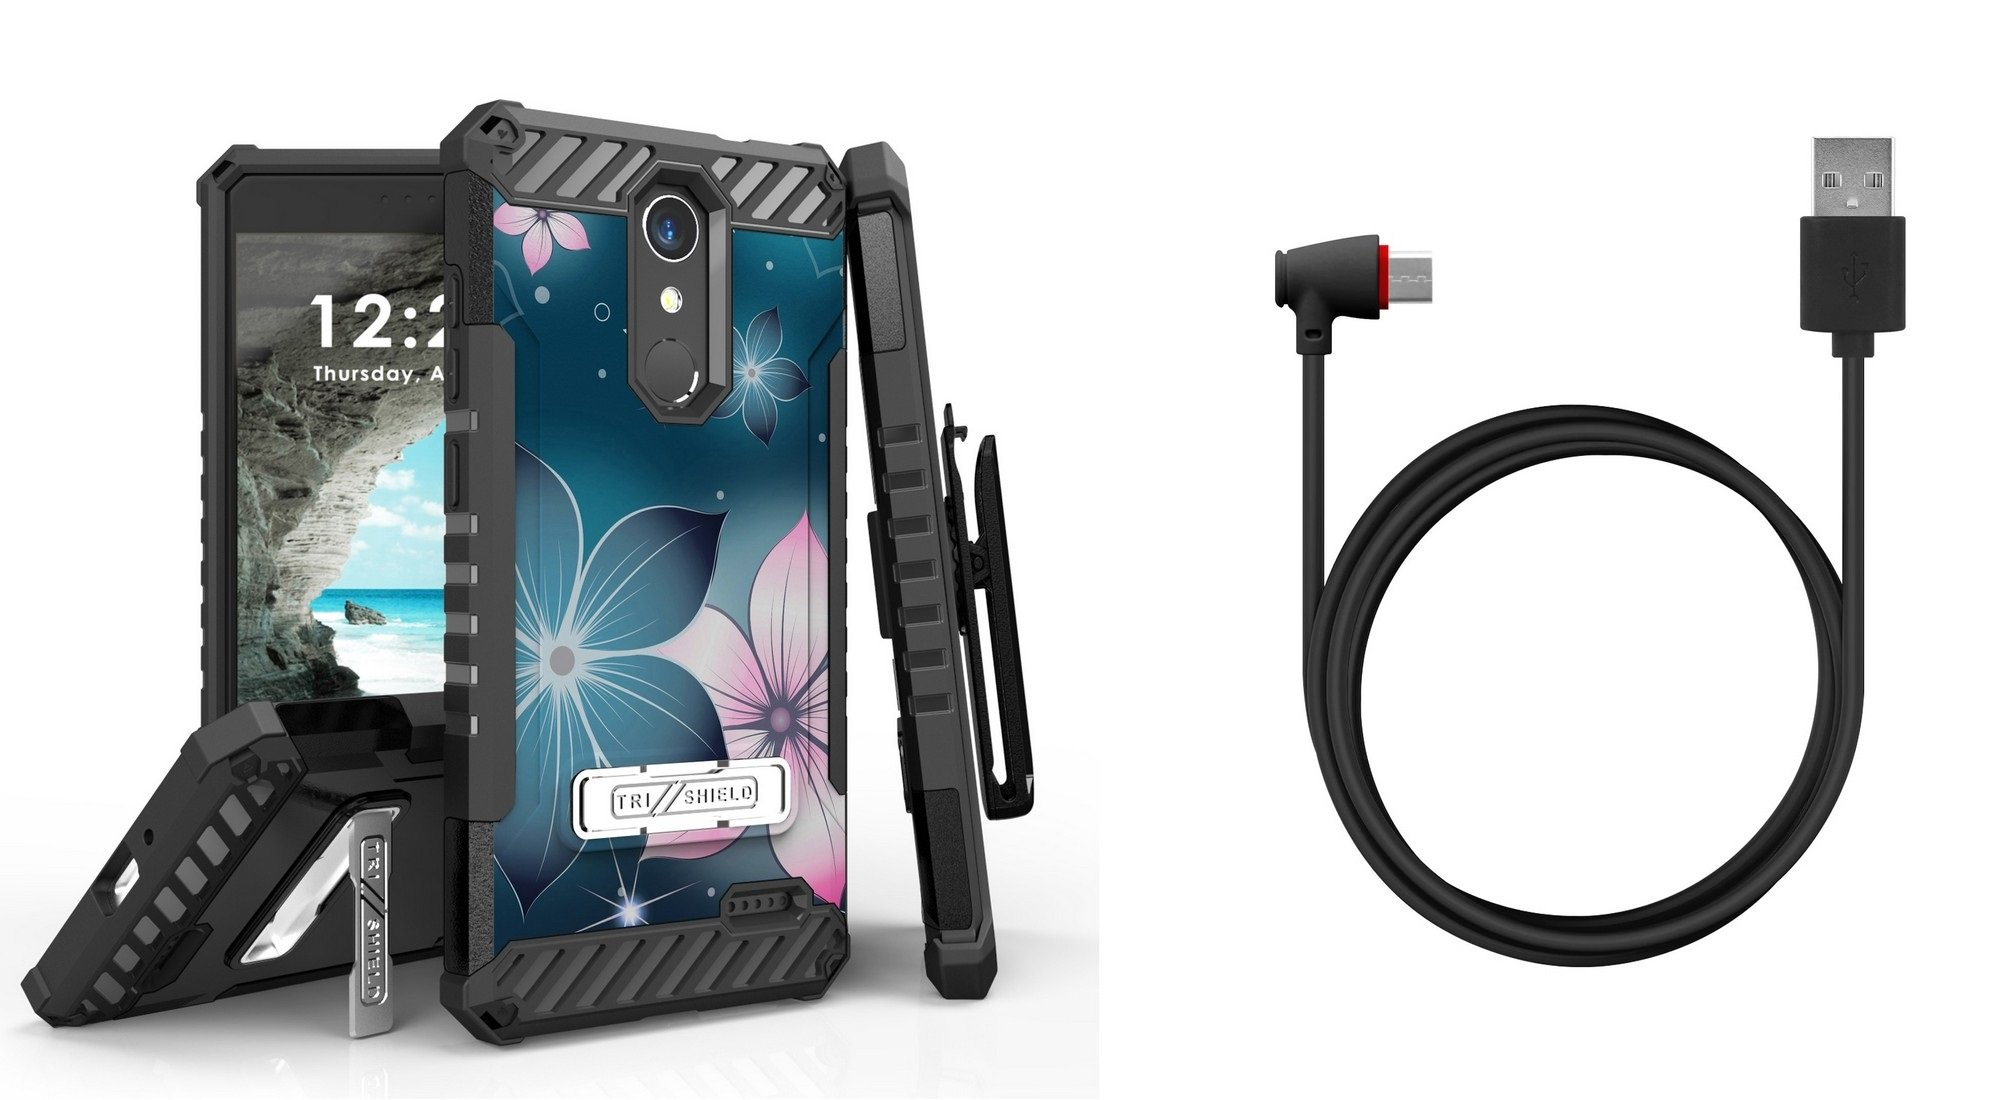 Tri-Shield Military Grade Case Bundle with Belt Clip Holster (Mystic Flowers), [90 Degree/Right Angle] USB Type C Cable [4 Foot], Atom Cloth for ZTE Blade Spark, ZTE ZMAX One LTE, ZTE Grand X 4